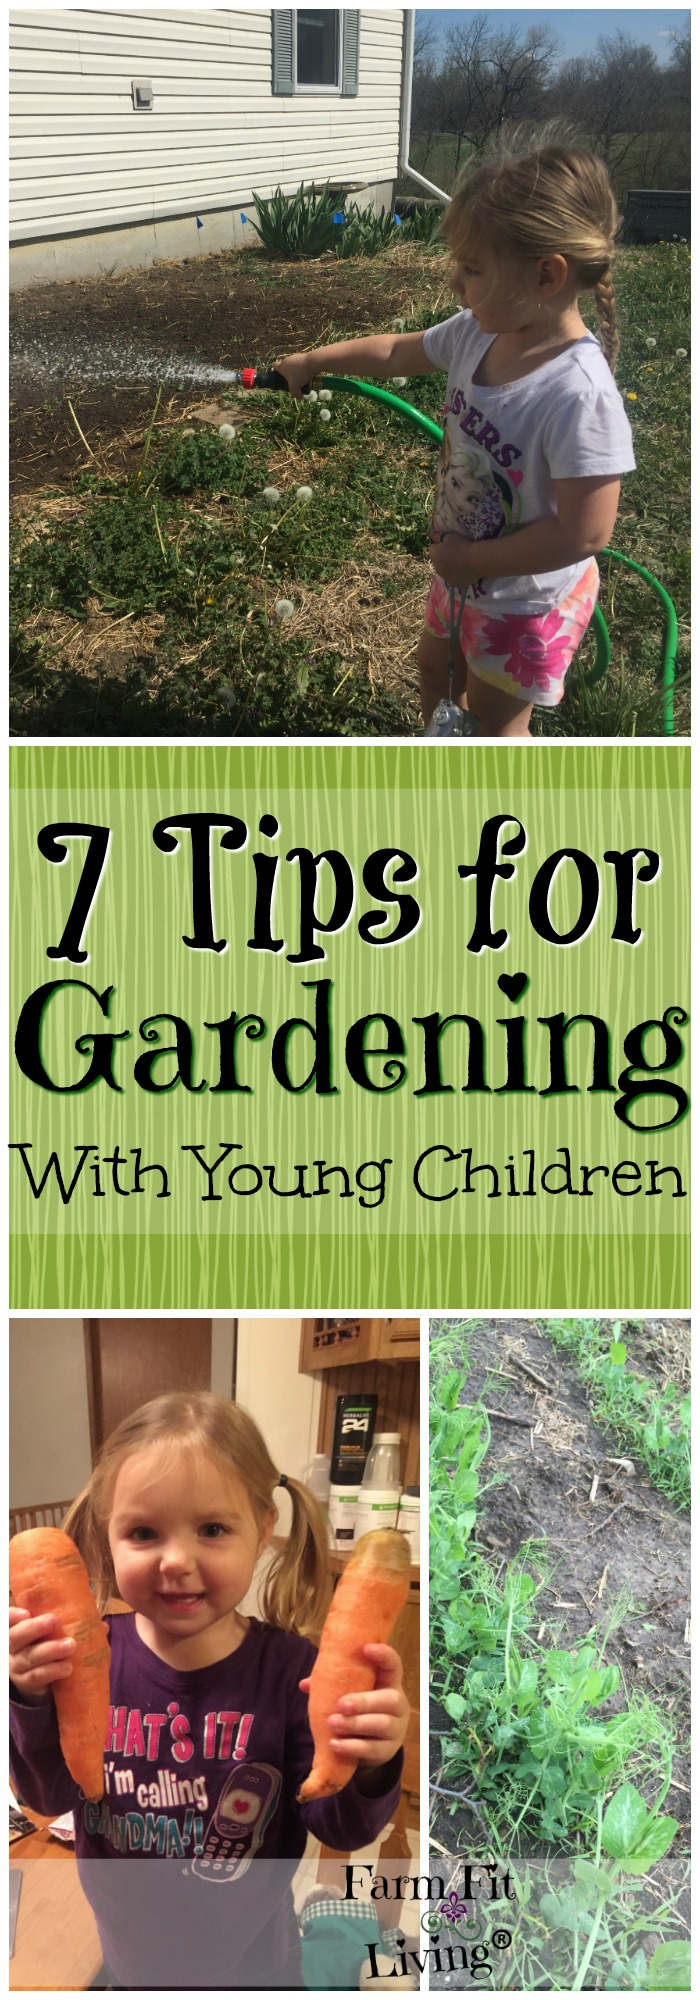 Love to garden but have super young kids? Here are 7 tips for gardening with children ages pre-K and younger. Learn to engage and help them learn along with you